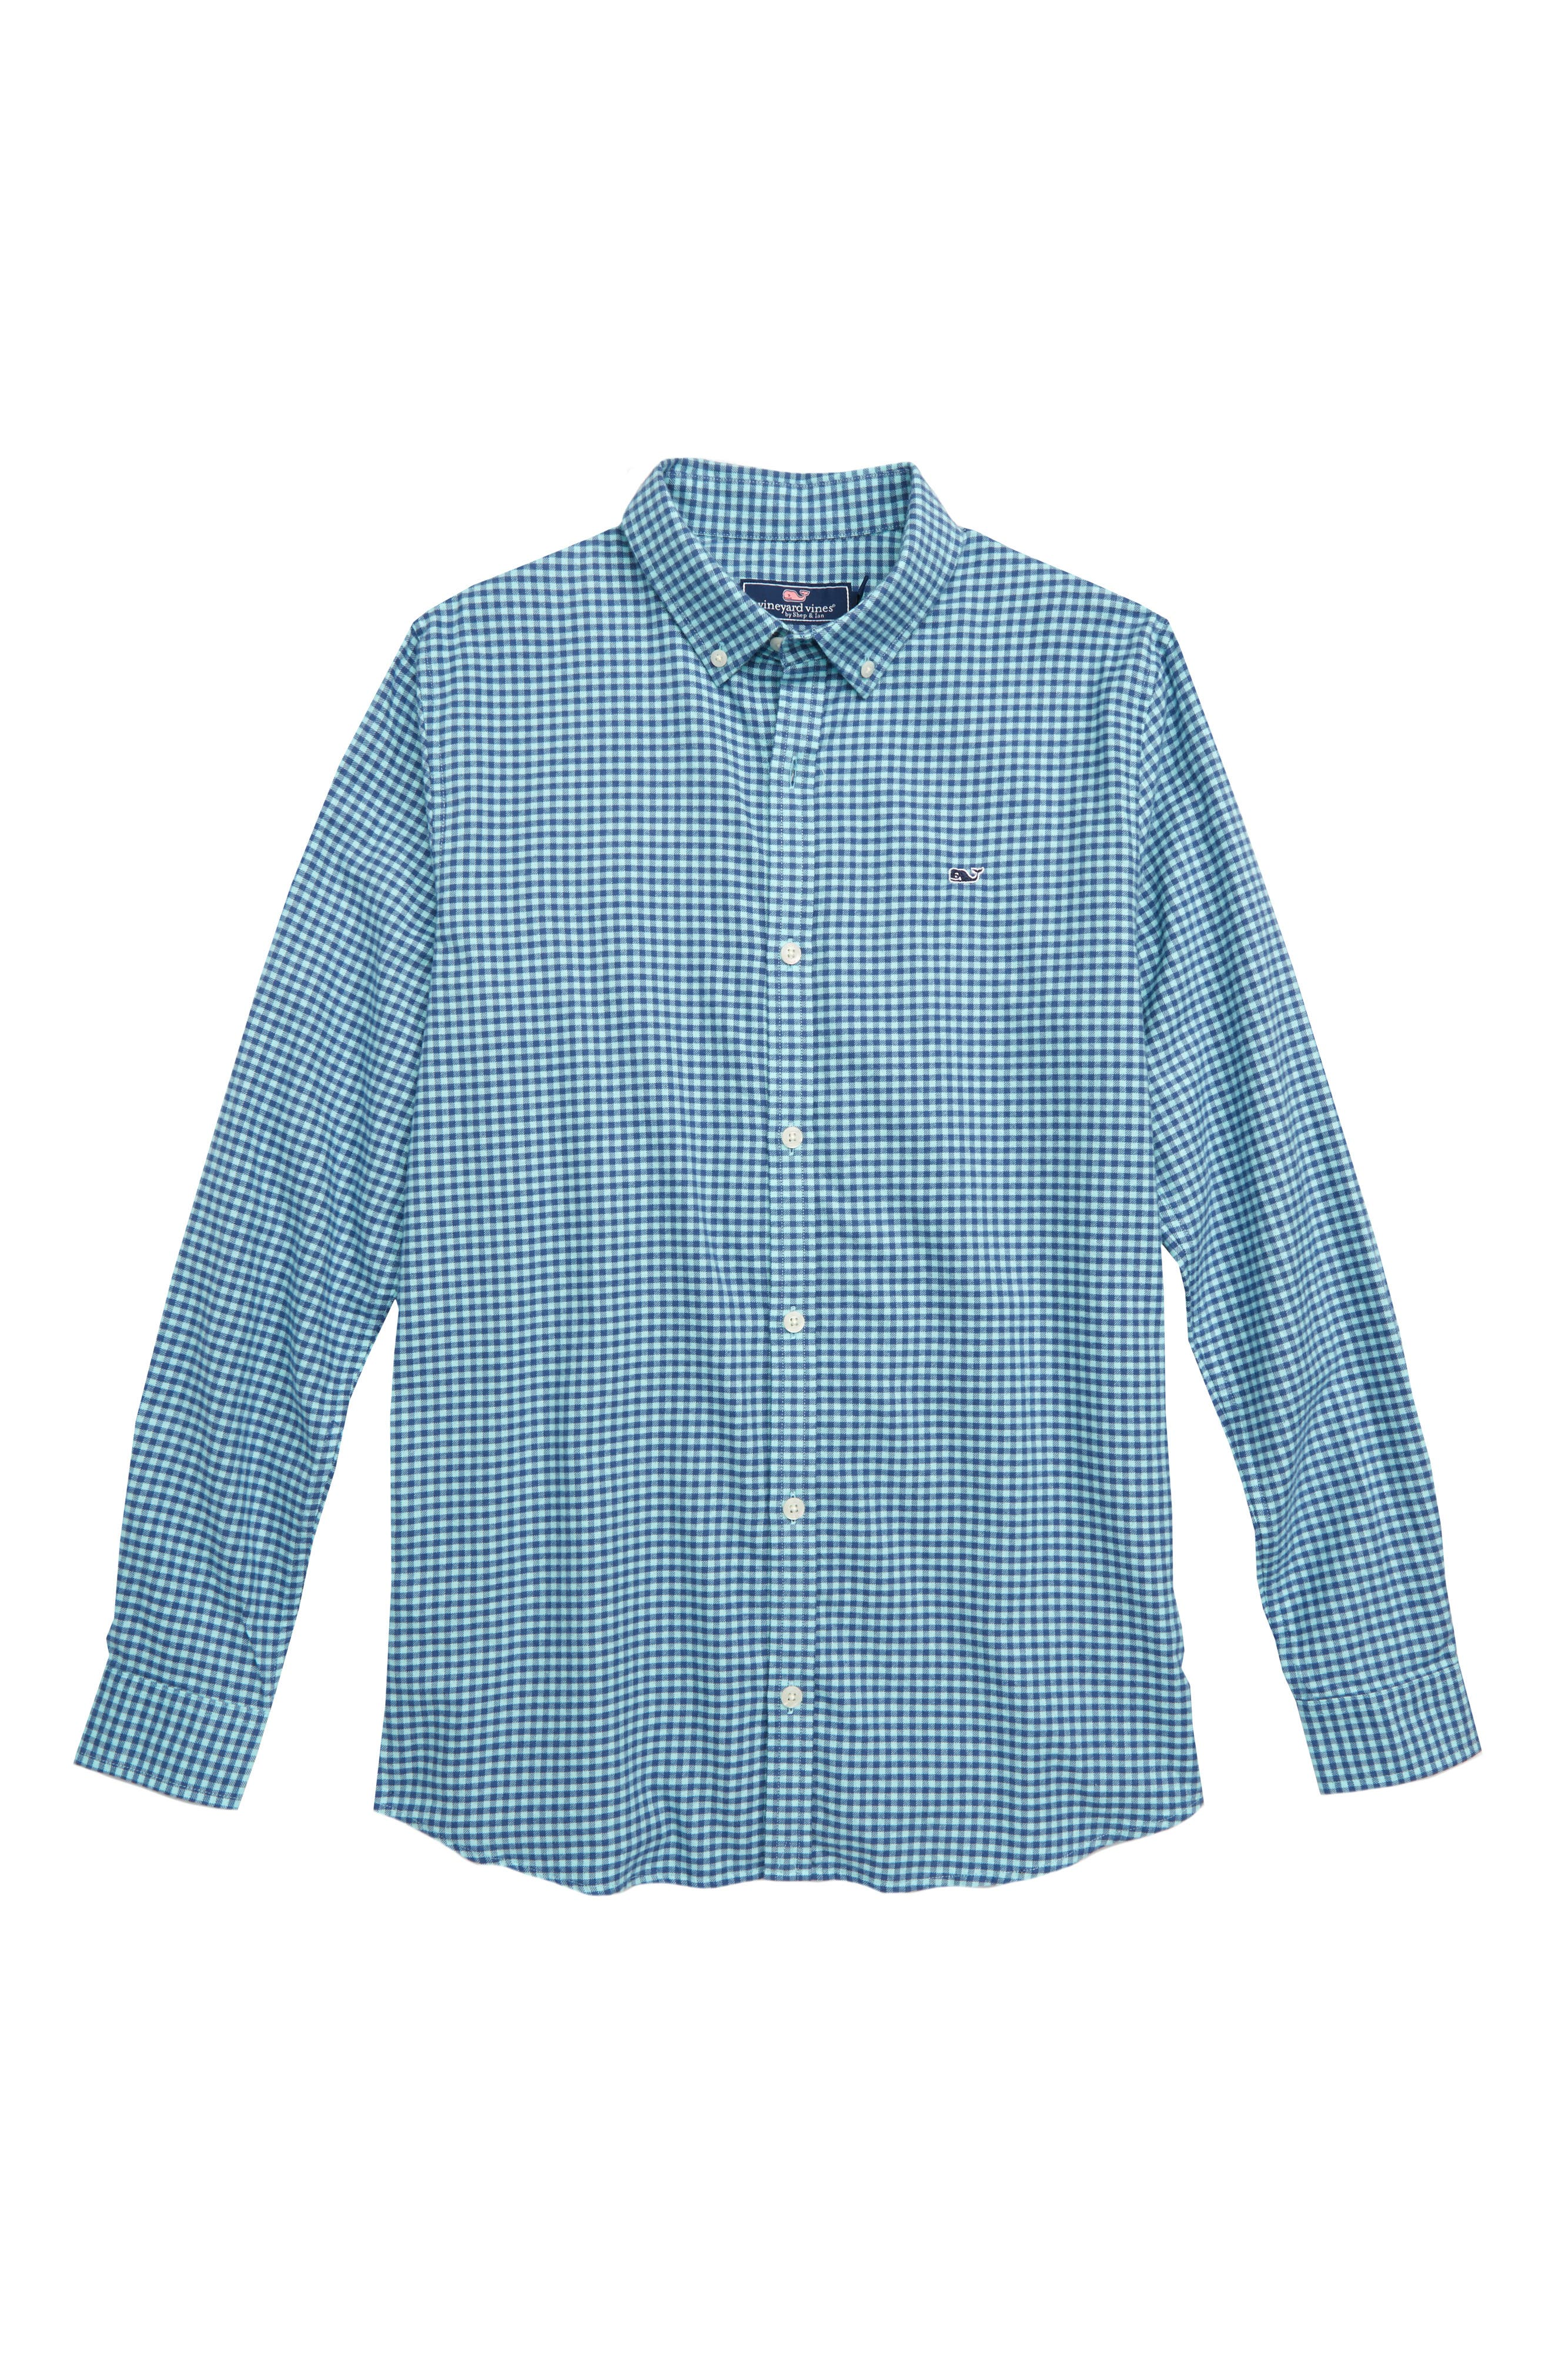 Tradewinds Flannel Whale Shirt,                             Main thumbnail 1, color,                             POOL SIDE